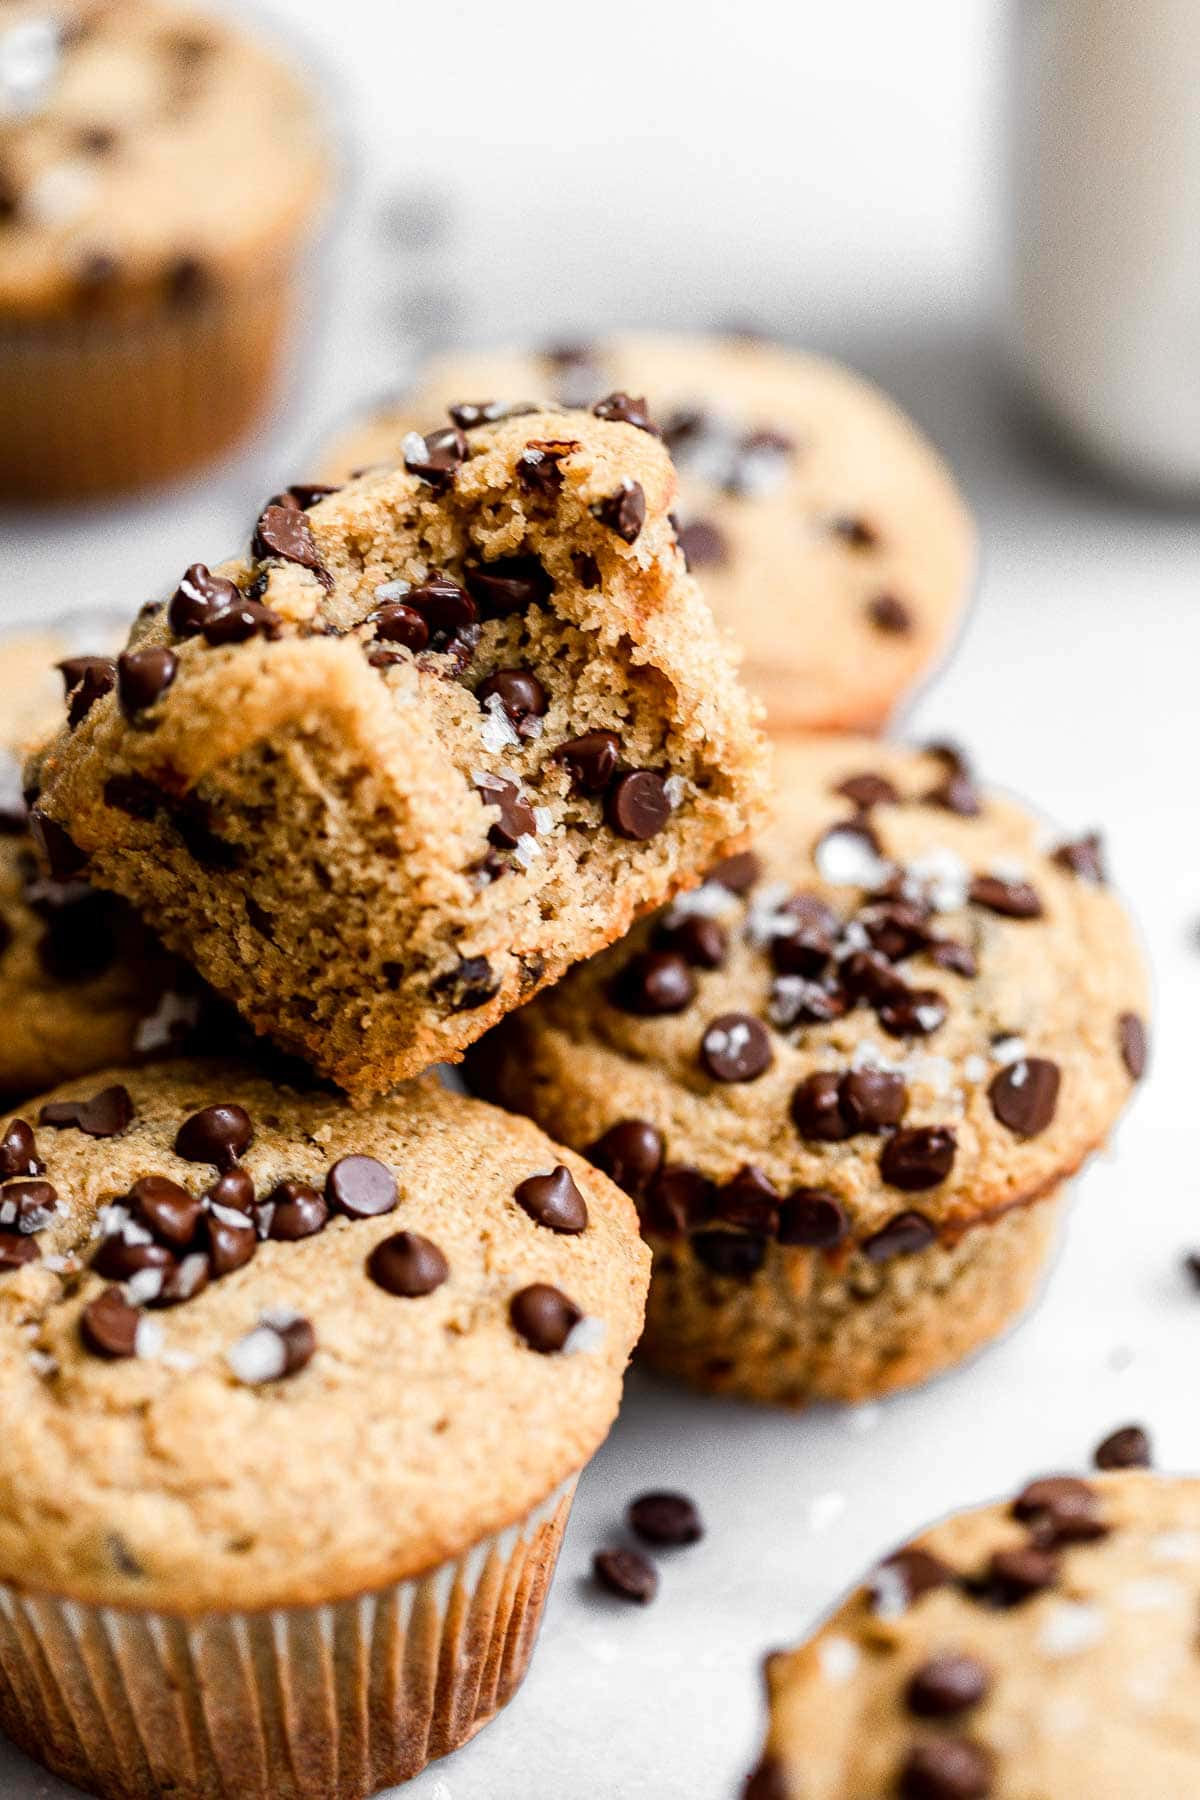 Chocolate chip banana muffins stacked on top of each other.